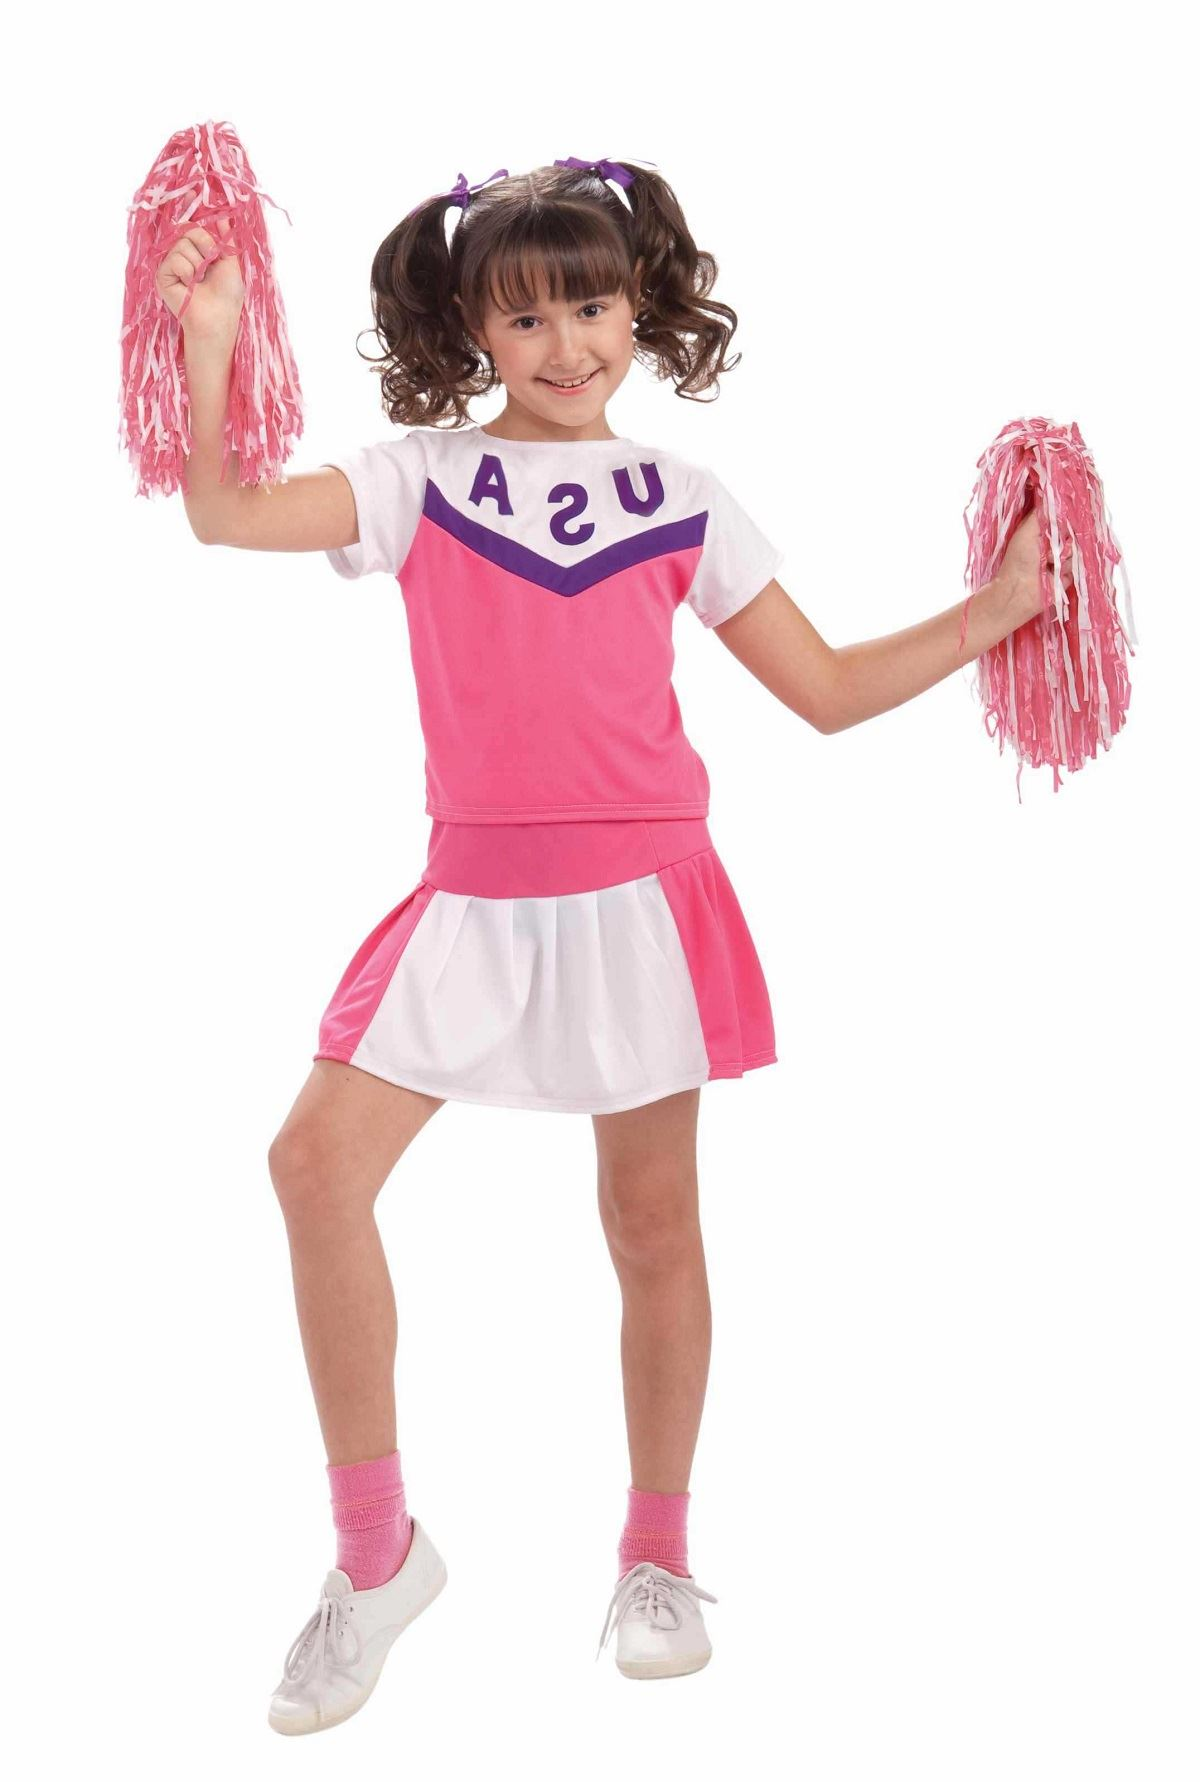 Kids Girls Classic Cheerleader Costume | $9.99 | The ...